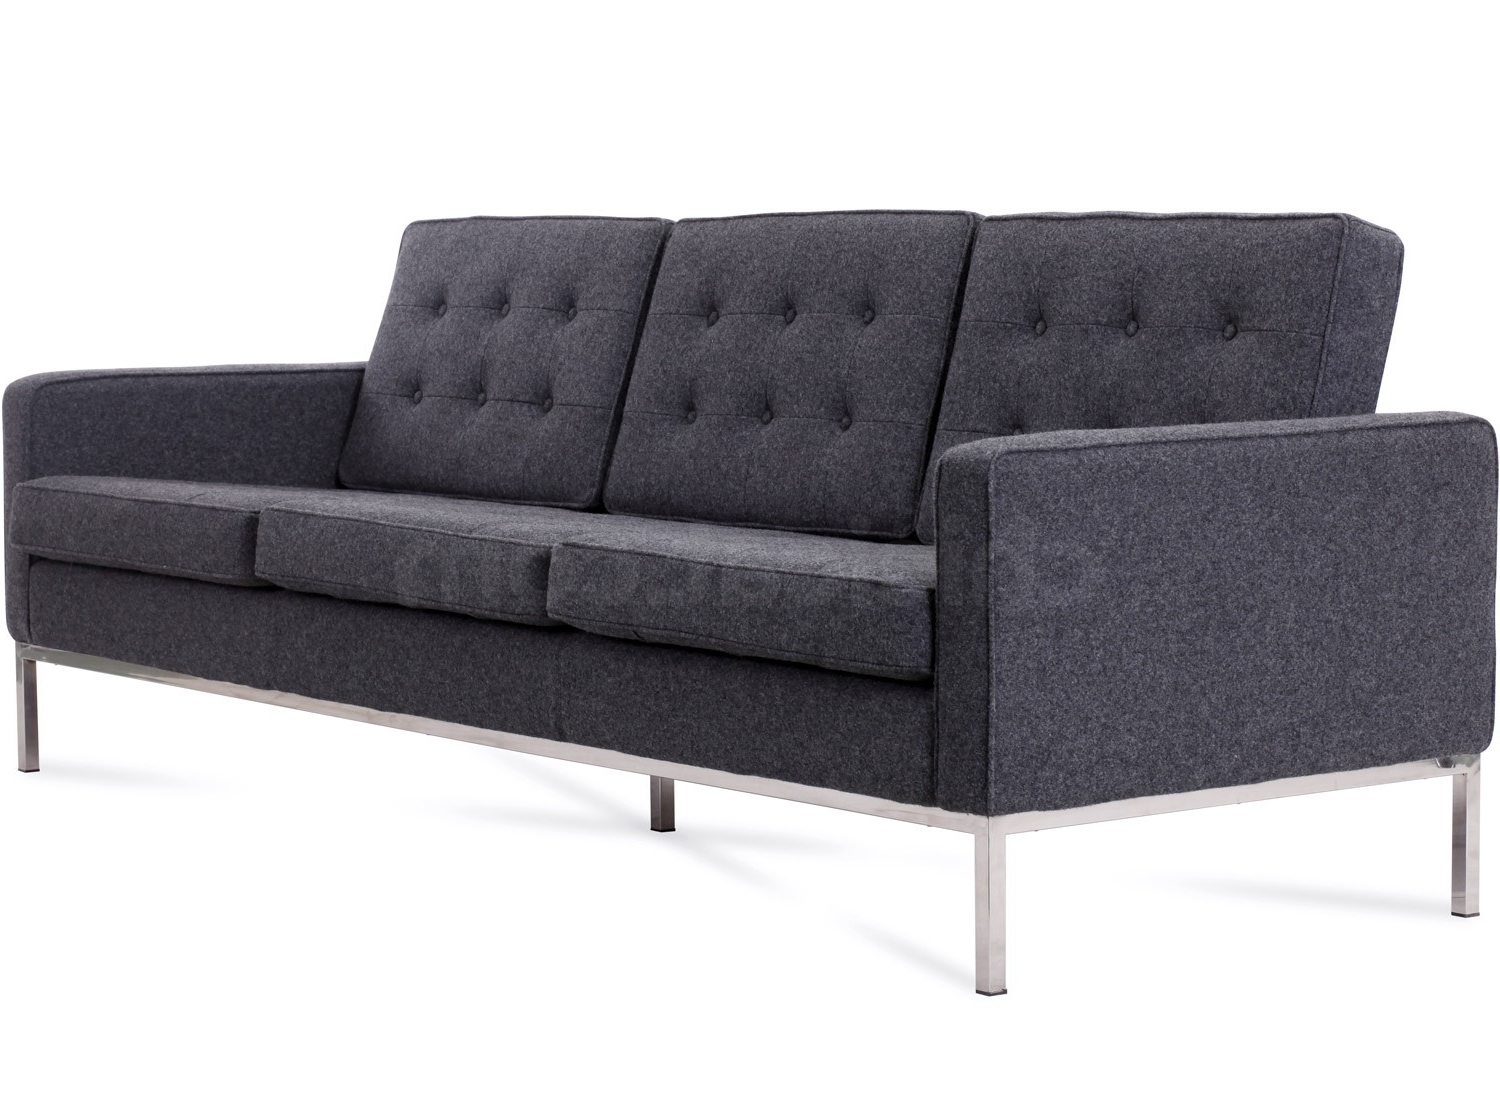 Recent Florence Knoll 3 Seater Sofas With Regard To Florence Knoll Sofa 3 Seater Wool (Platinum Replica) (View 14 of 15)